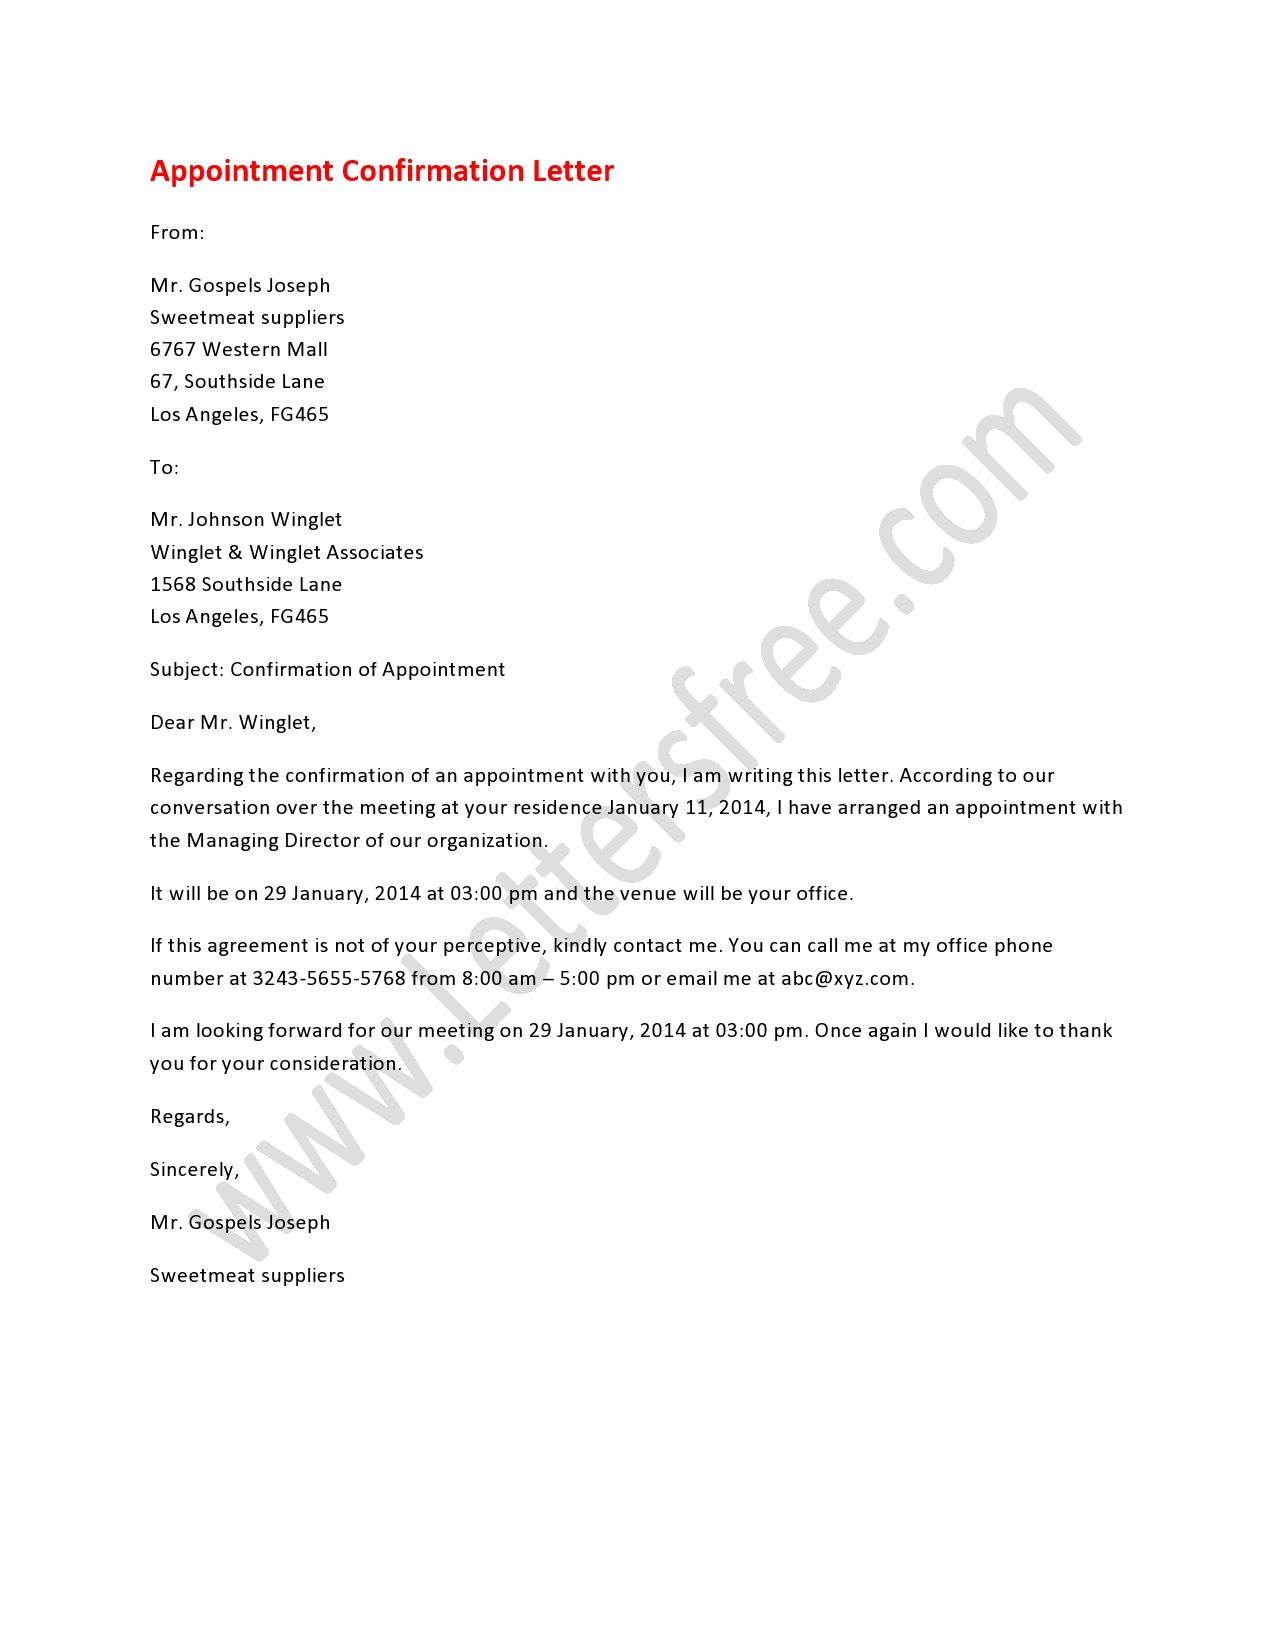 How to write letter of confirmation images letter format formal sample confirmation letter solarfm how to write a confirmation letter with sample letters expocarfo images altavistaventures Images